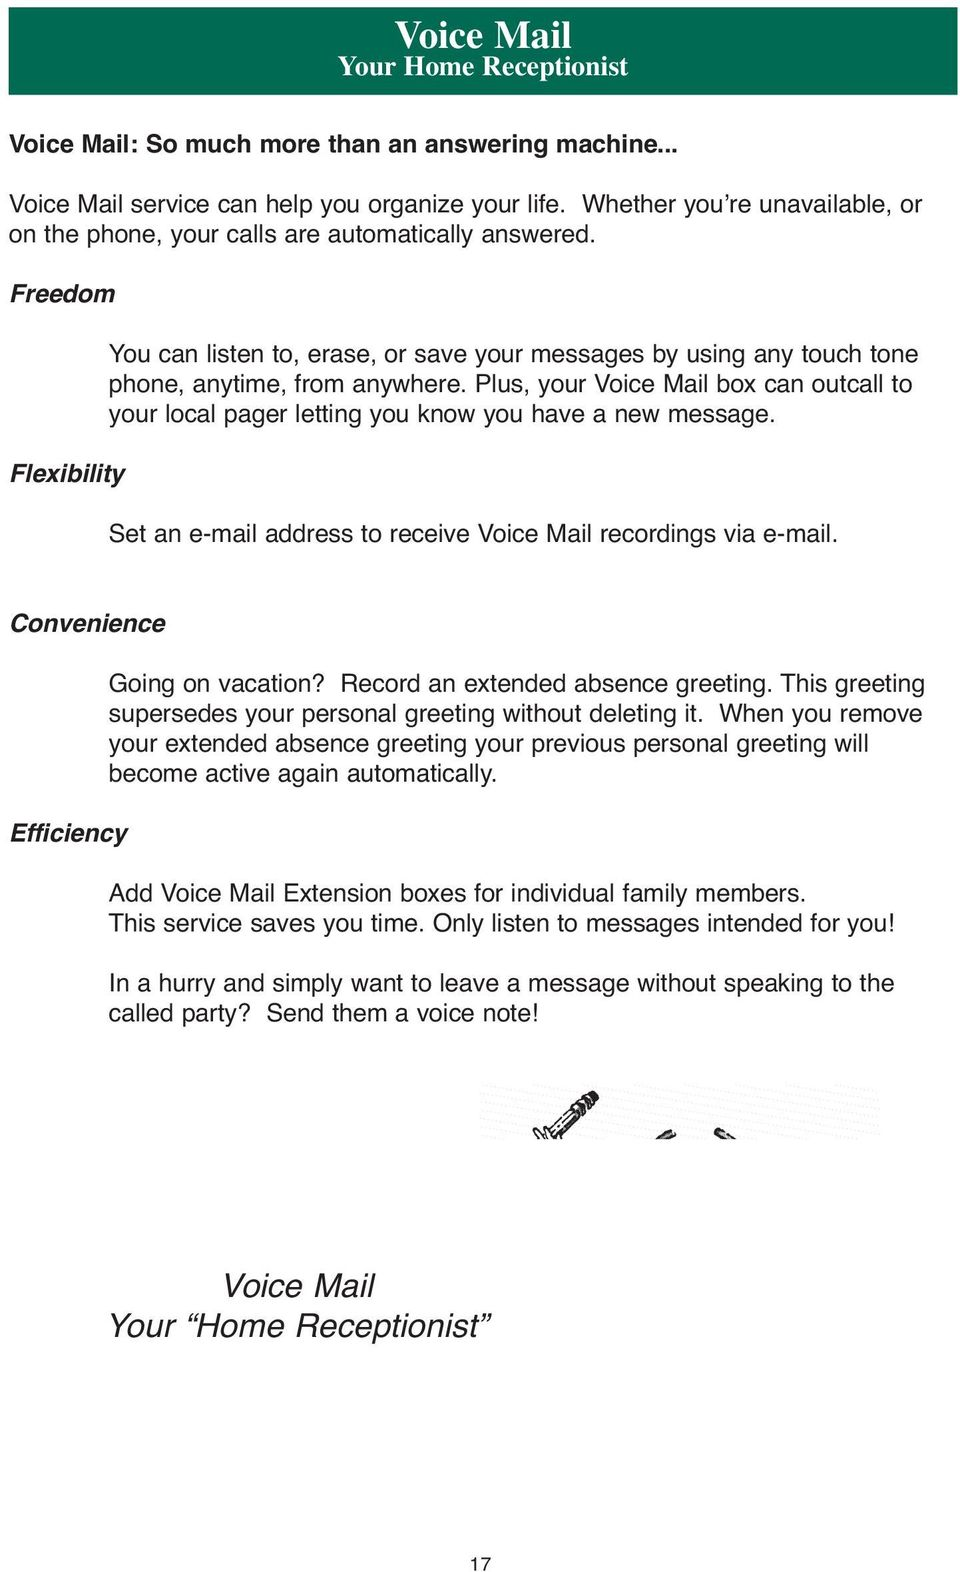 Voice Mail Guide One Of Your Vtel Neighbors Real People Real